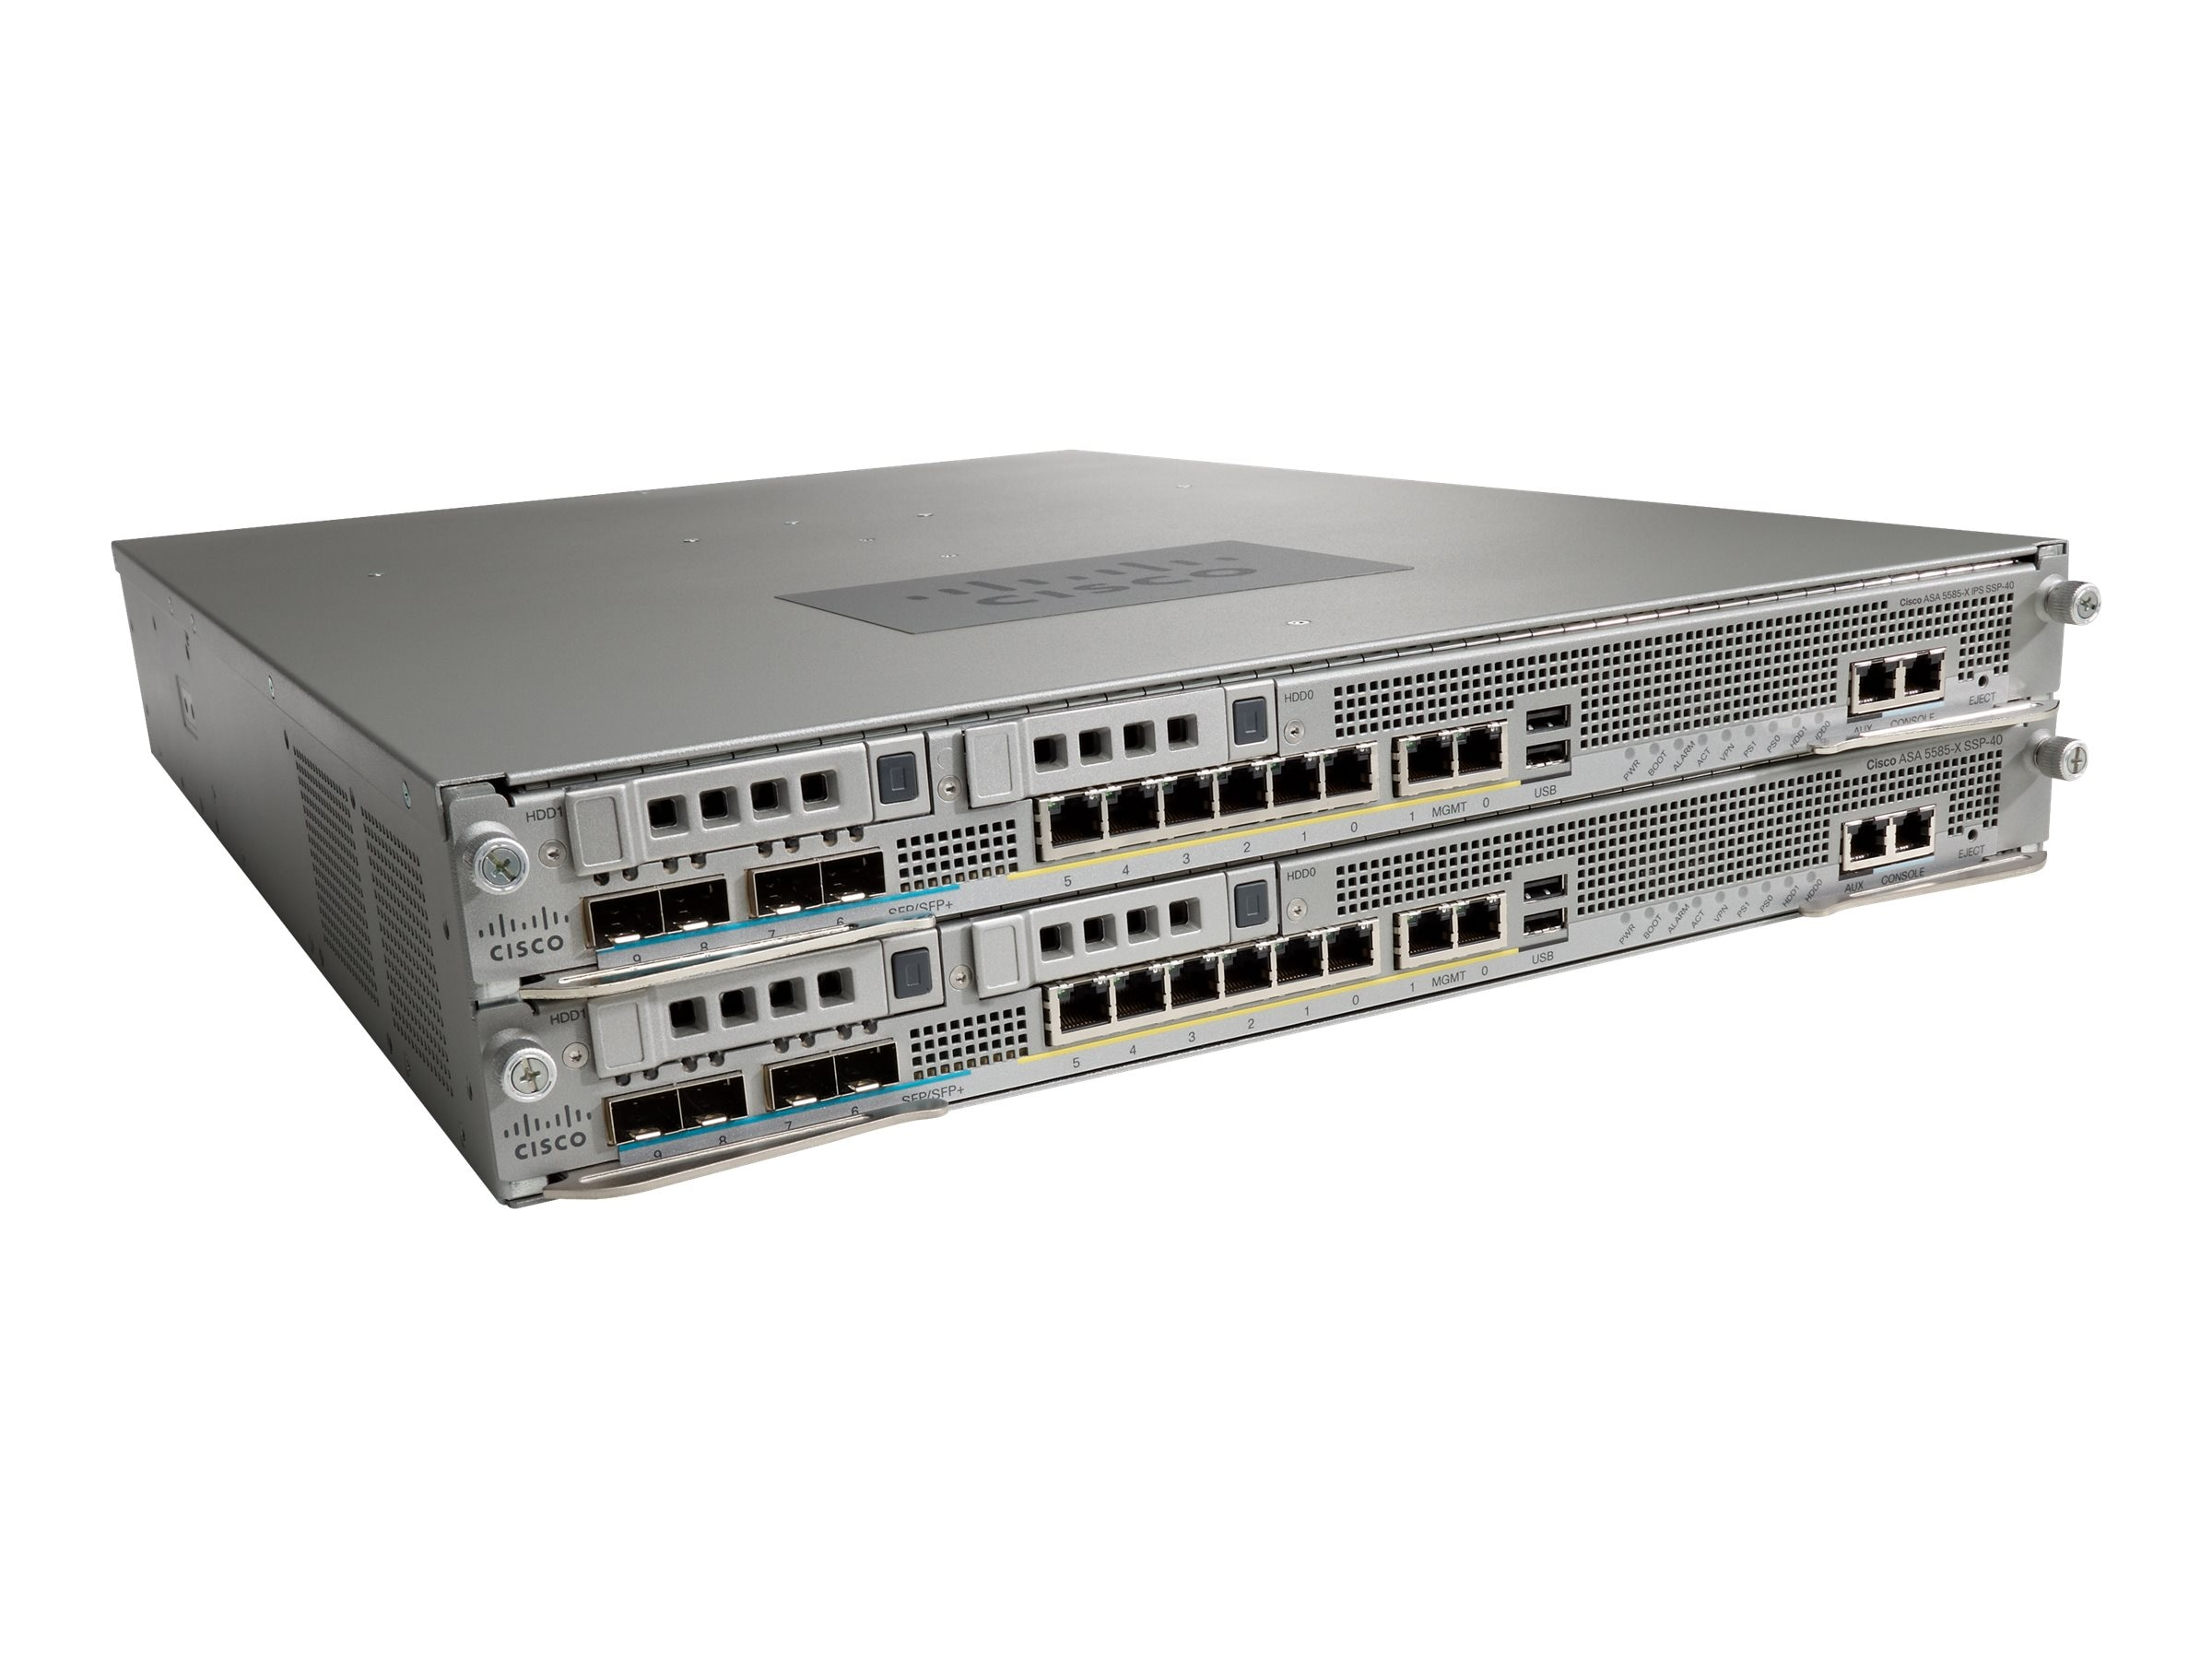 Cisco 5585-X SSP-60, FirePOWER, ASA5585-S60F60-K9, 30564907, Network Security Appliances